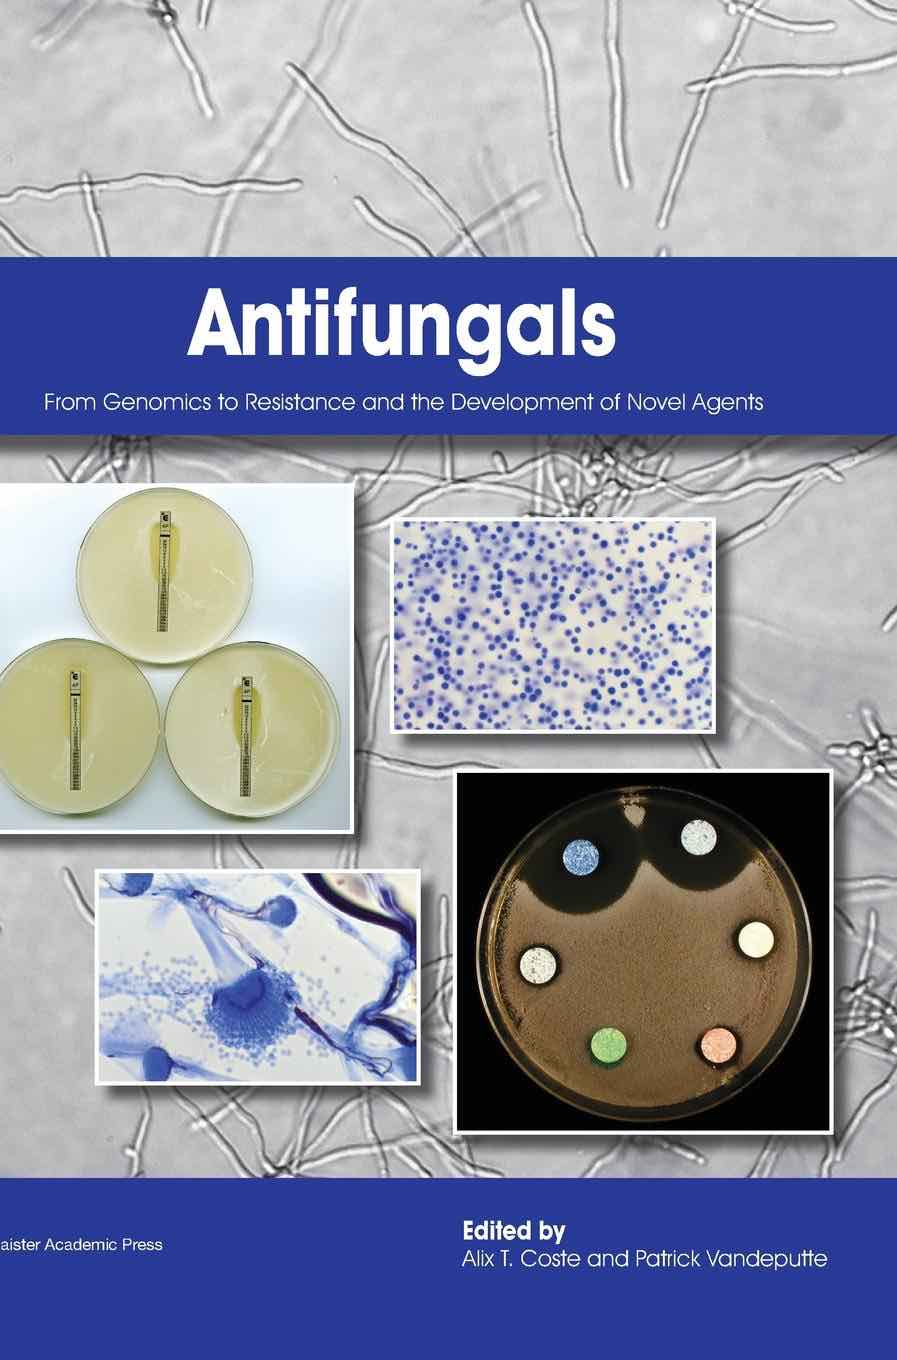 Molecular microbiology books caister academic press antifungals from genomics to resistance and the development of novel agents fandeluxe